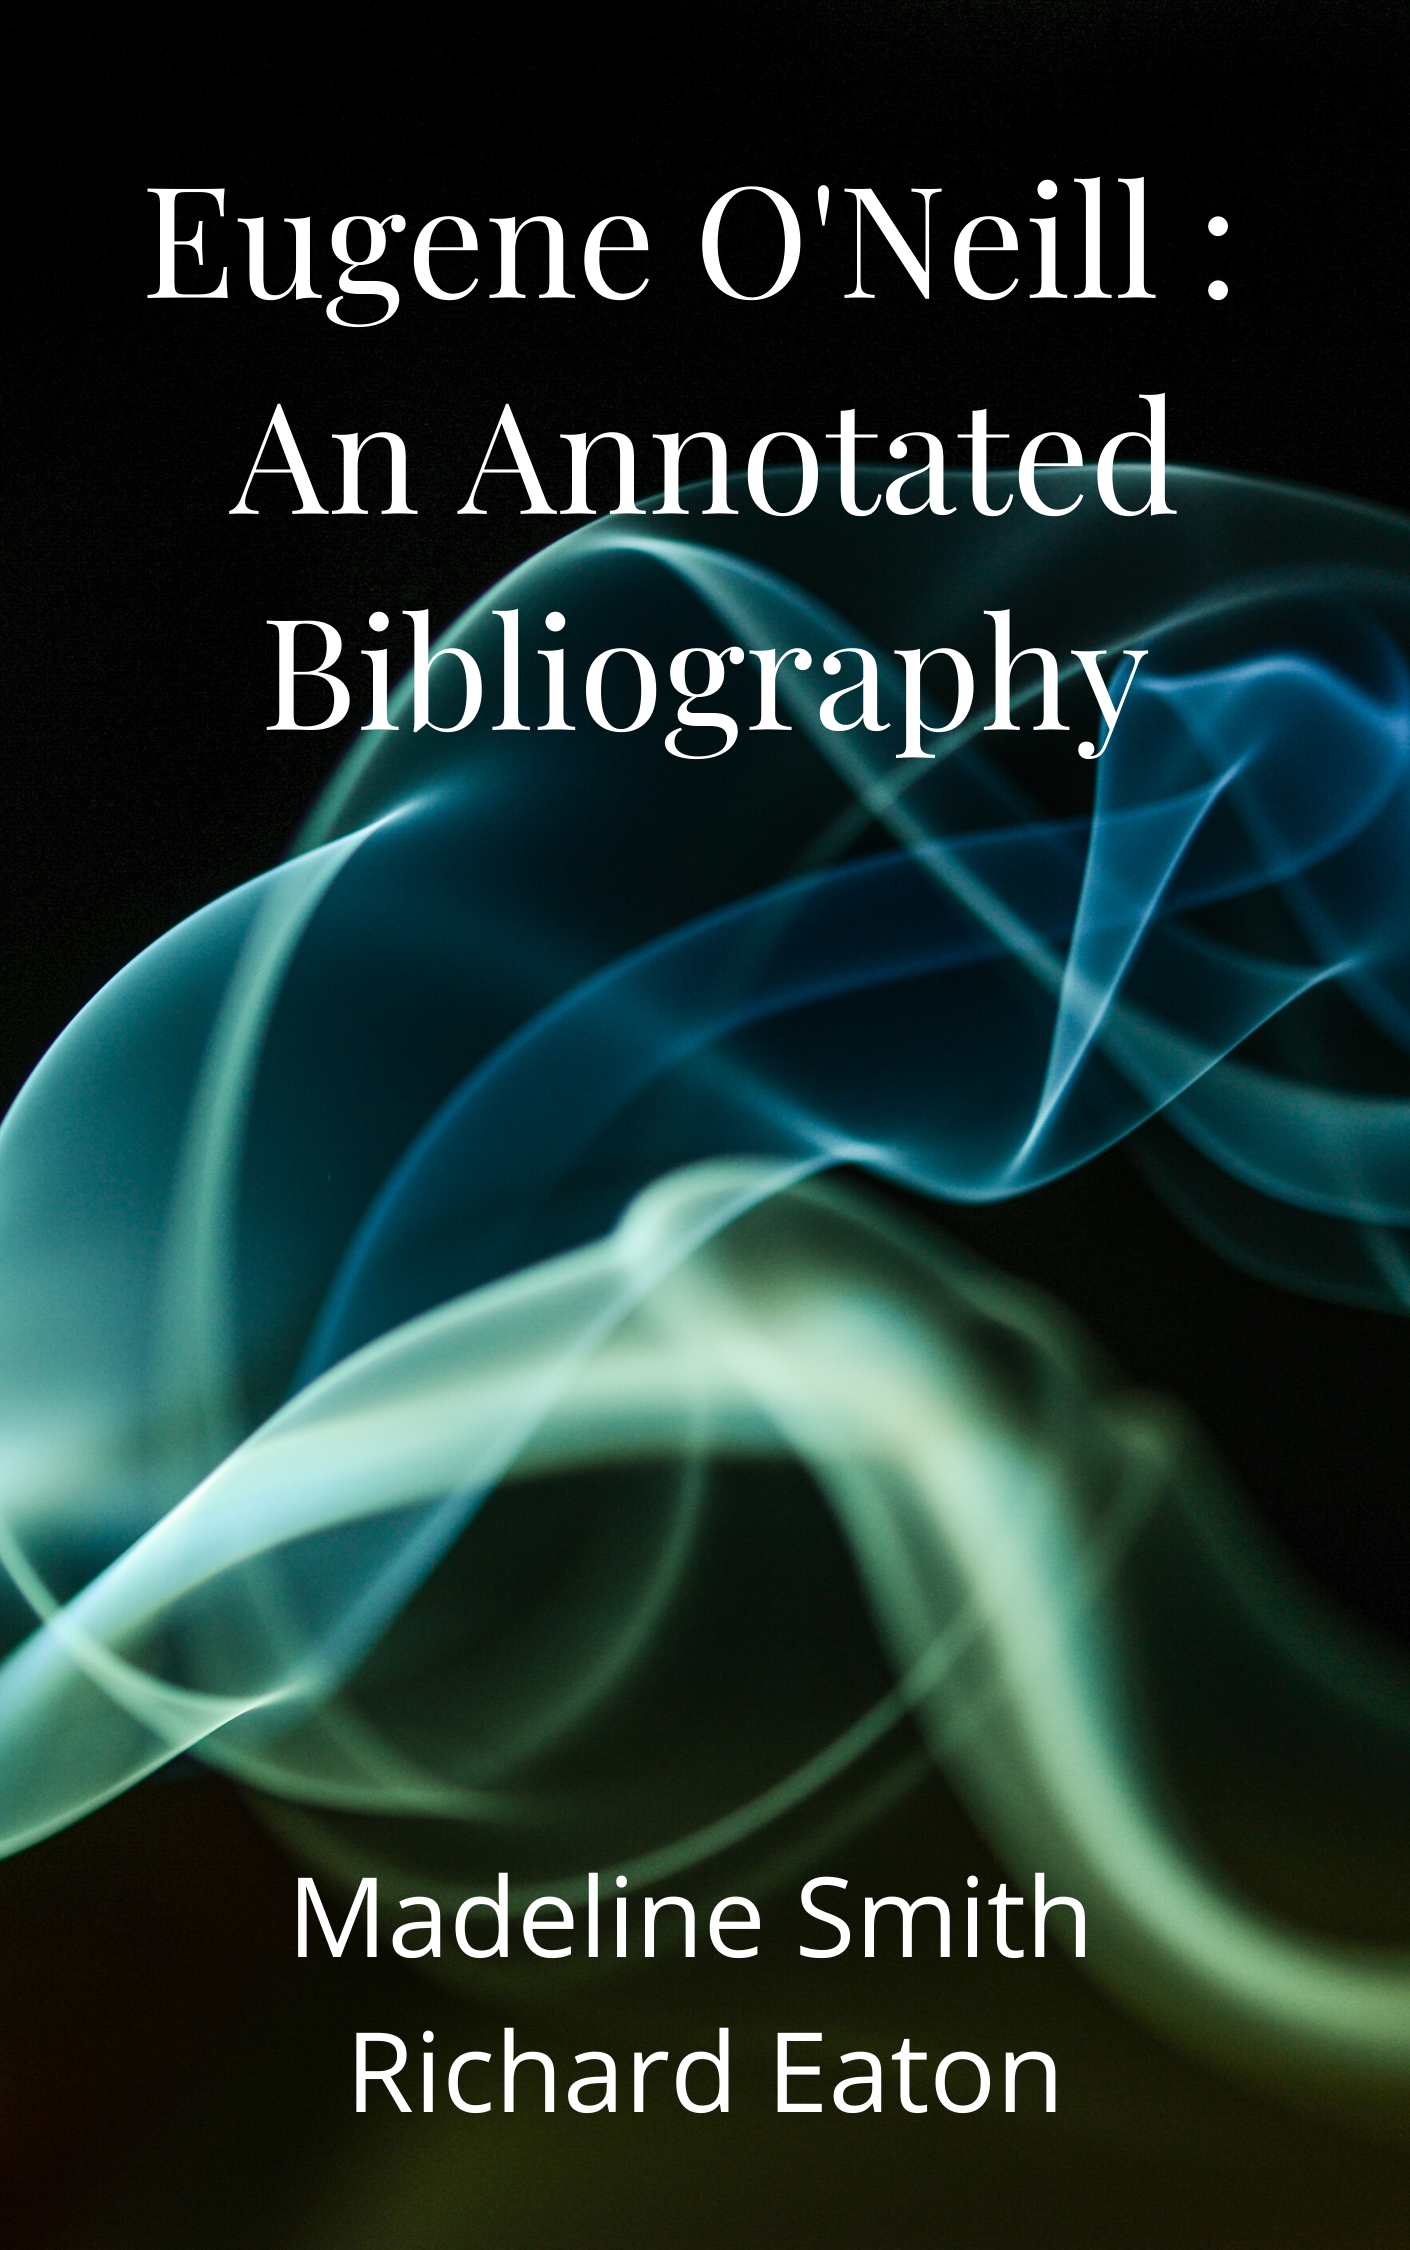 Eugene O'Neill: An Annotated Bibliography